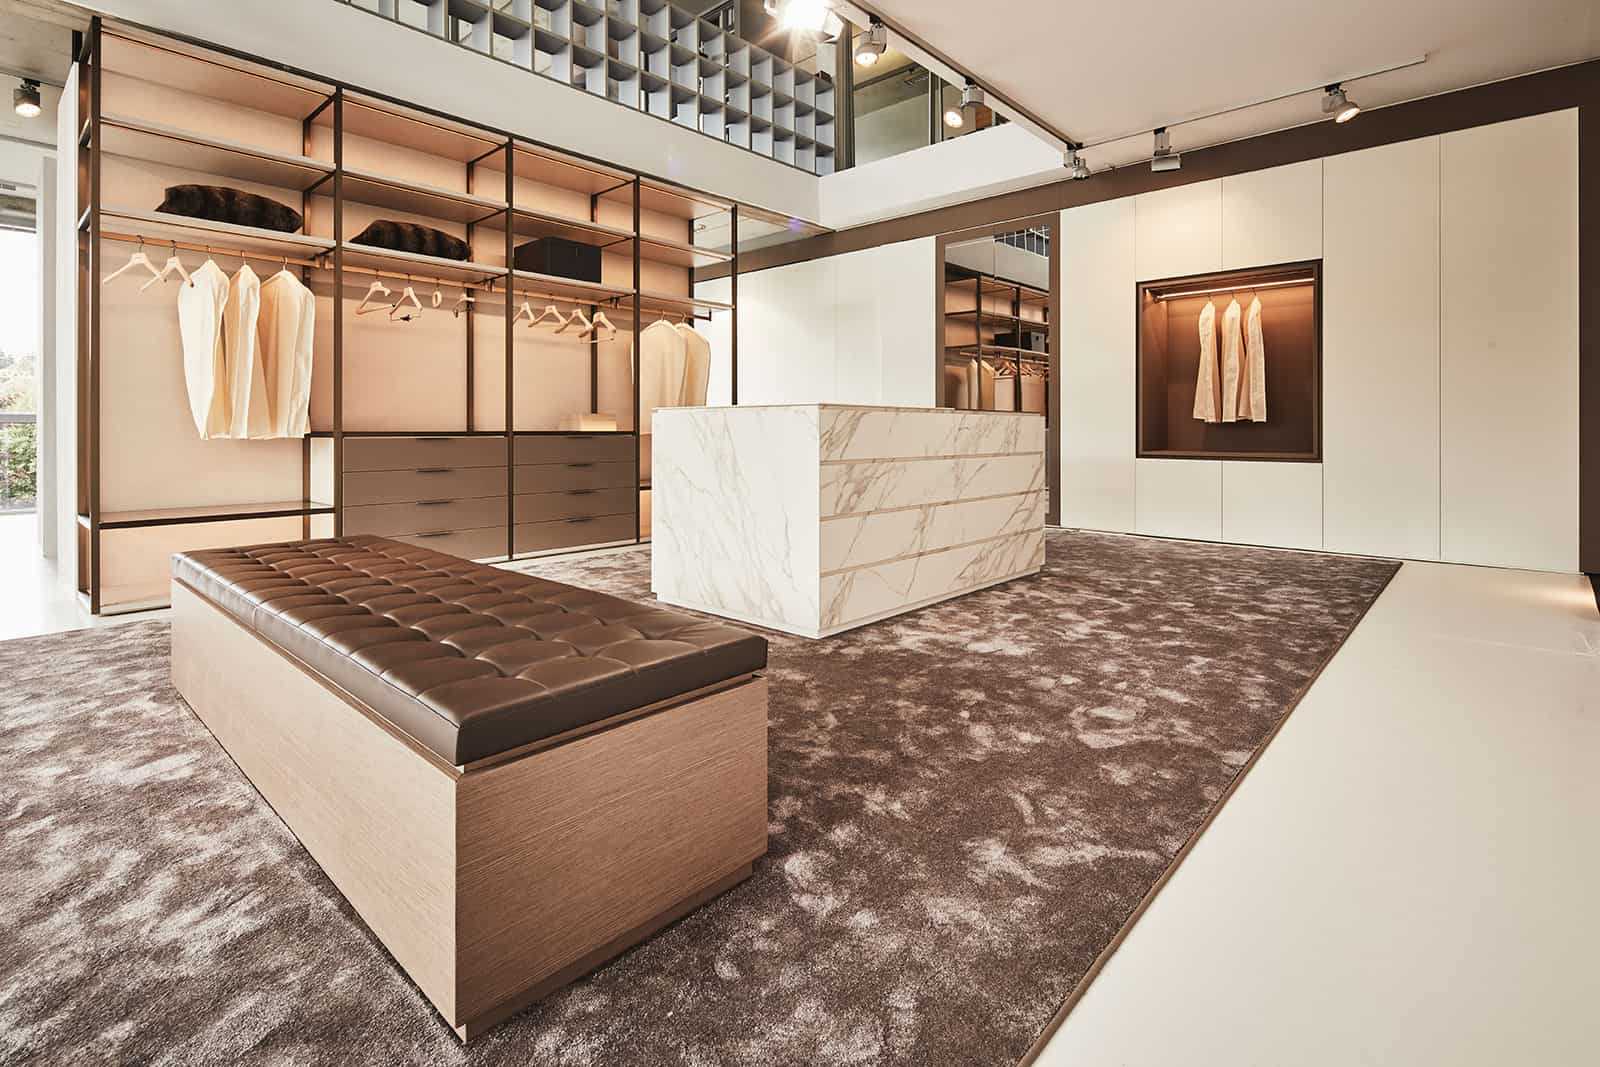 modern bespoke walk-in closet with leather, stone, and wood accents custom luxury walk-in closet by schmalenbach designed by eggersmann